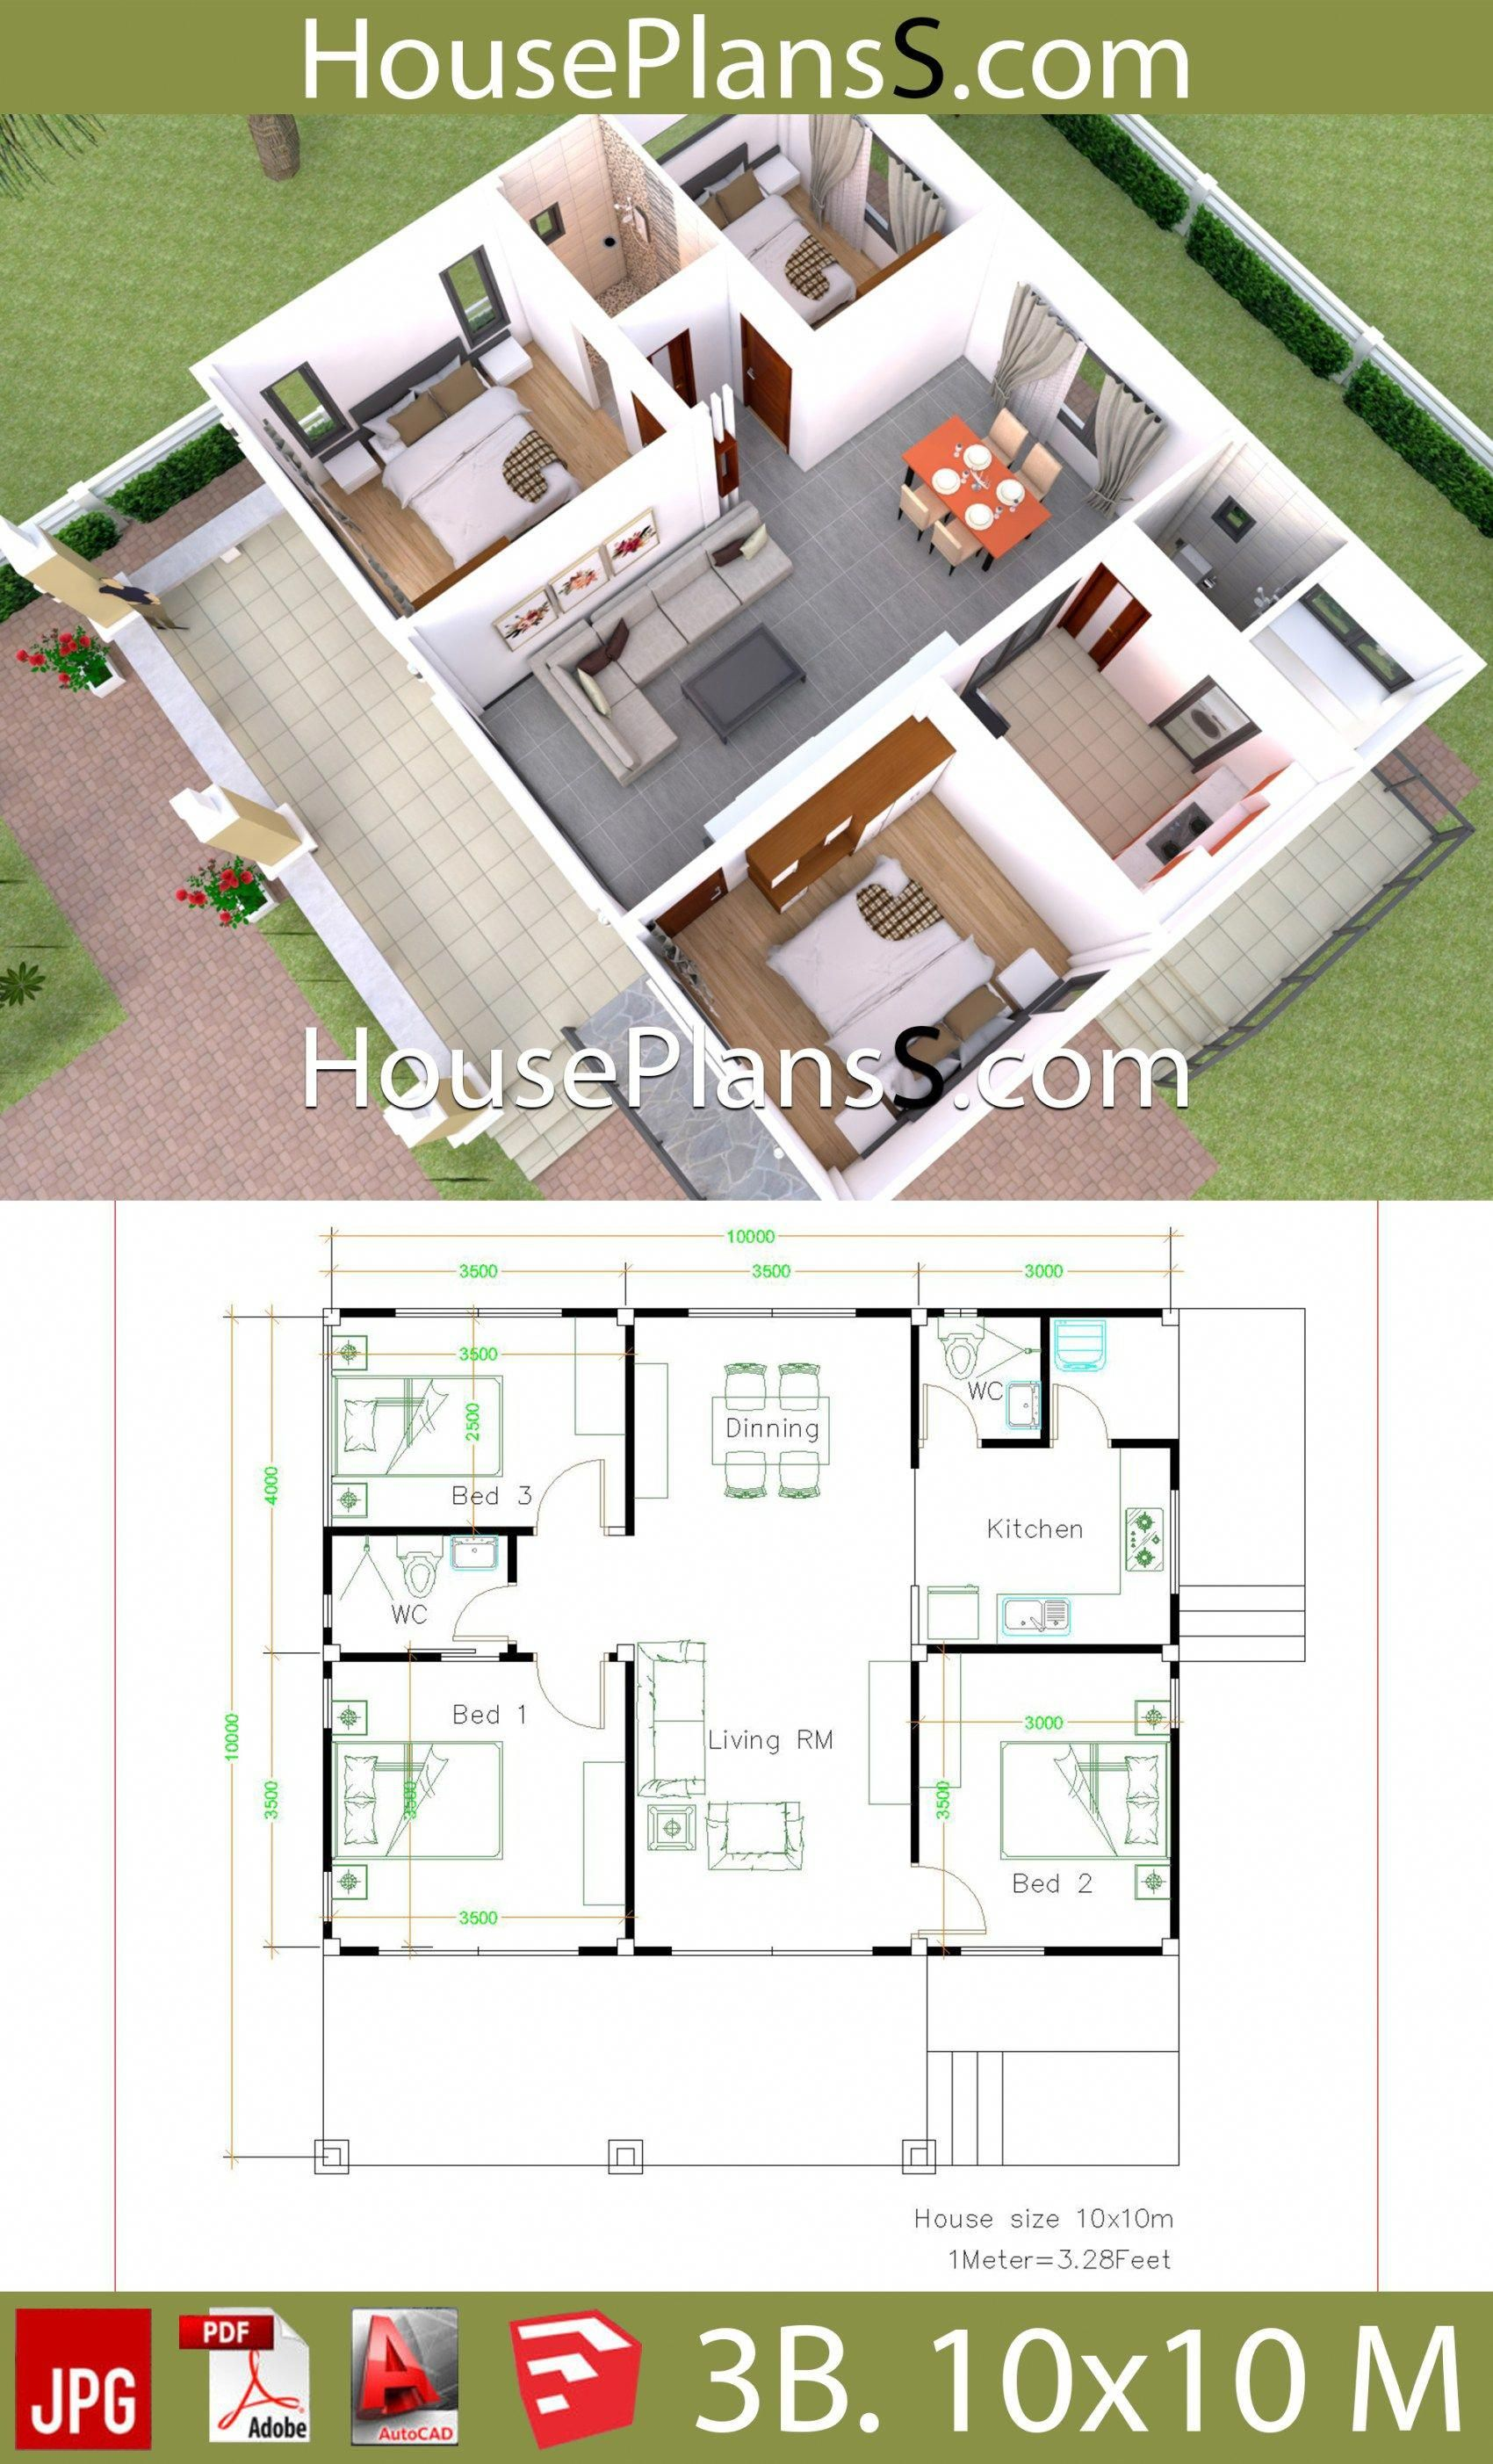 Framing A 10x10 Room: House Design Plans 10x10 With 3 Bedrooms Full Interior